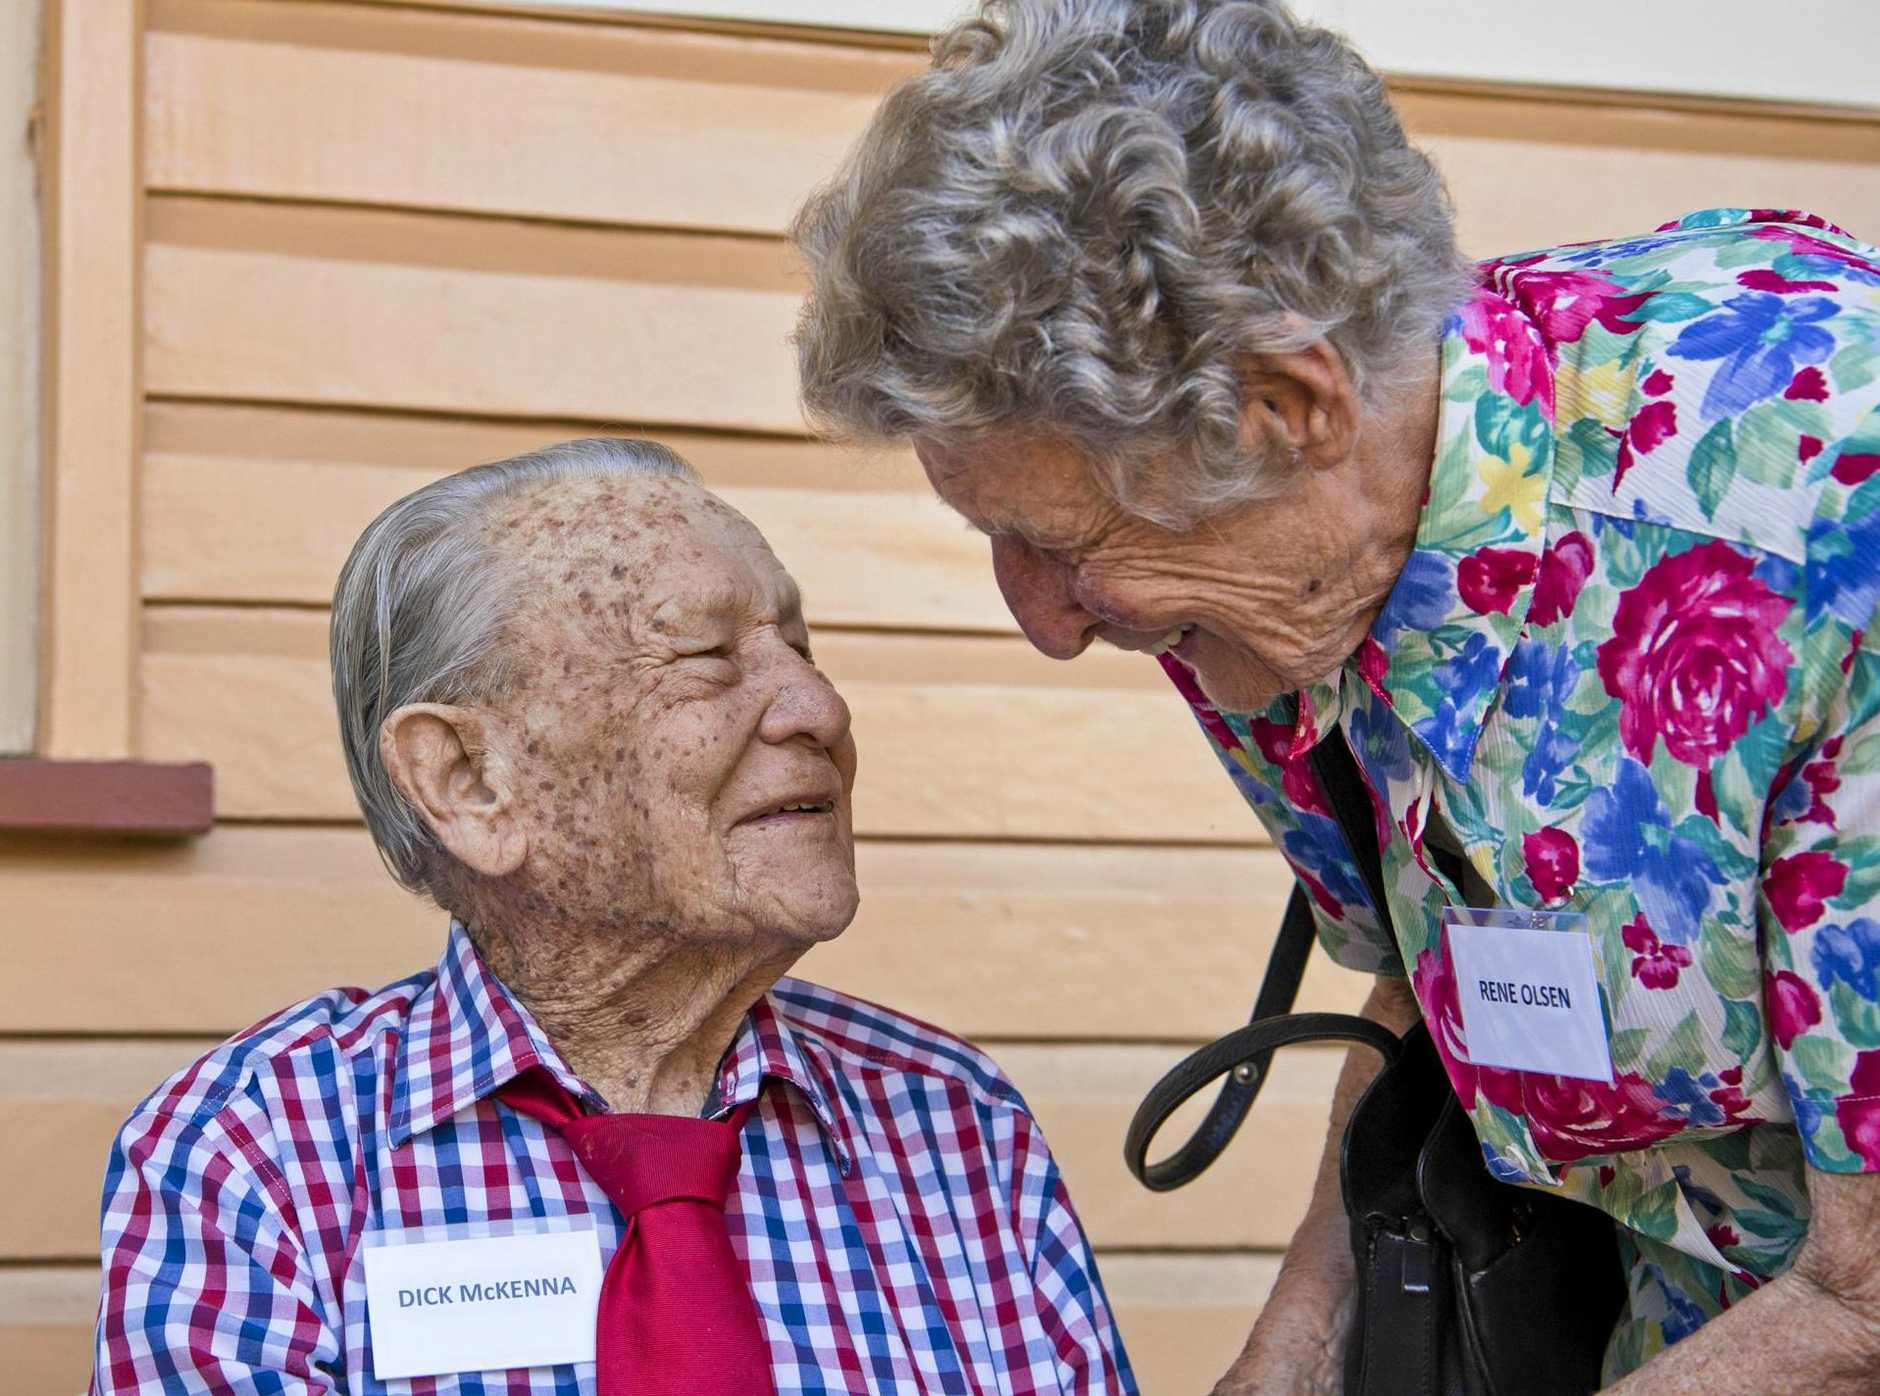 LEST WE FORGET: 25th Battalion veteran Dick McKenna greets Rene Olsen, widow of fellow veteran Kev Olsen, at the 76th anniversary of the departure of 25th Battalion troops from Spring Bluff Railway Station.